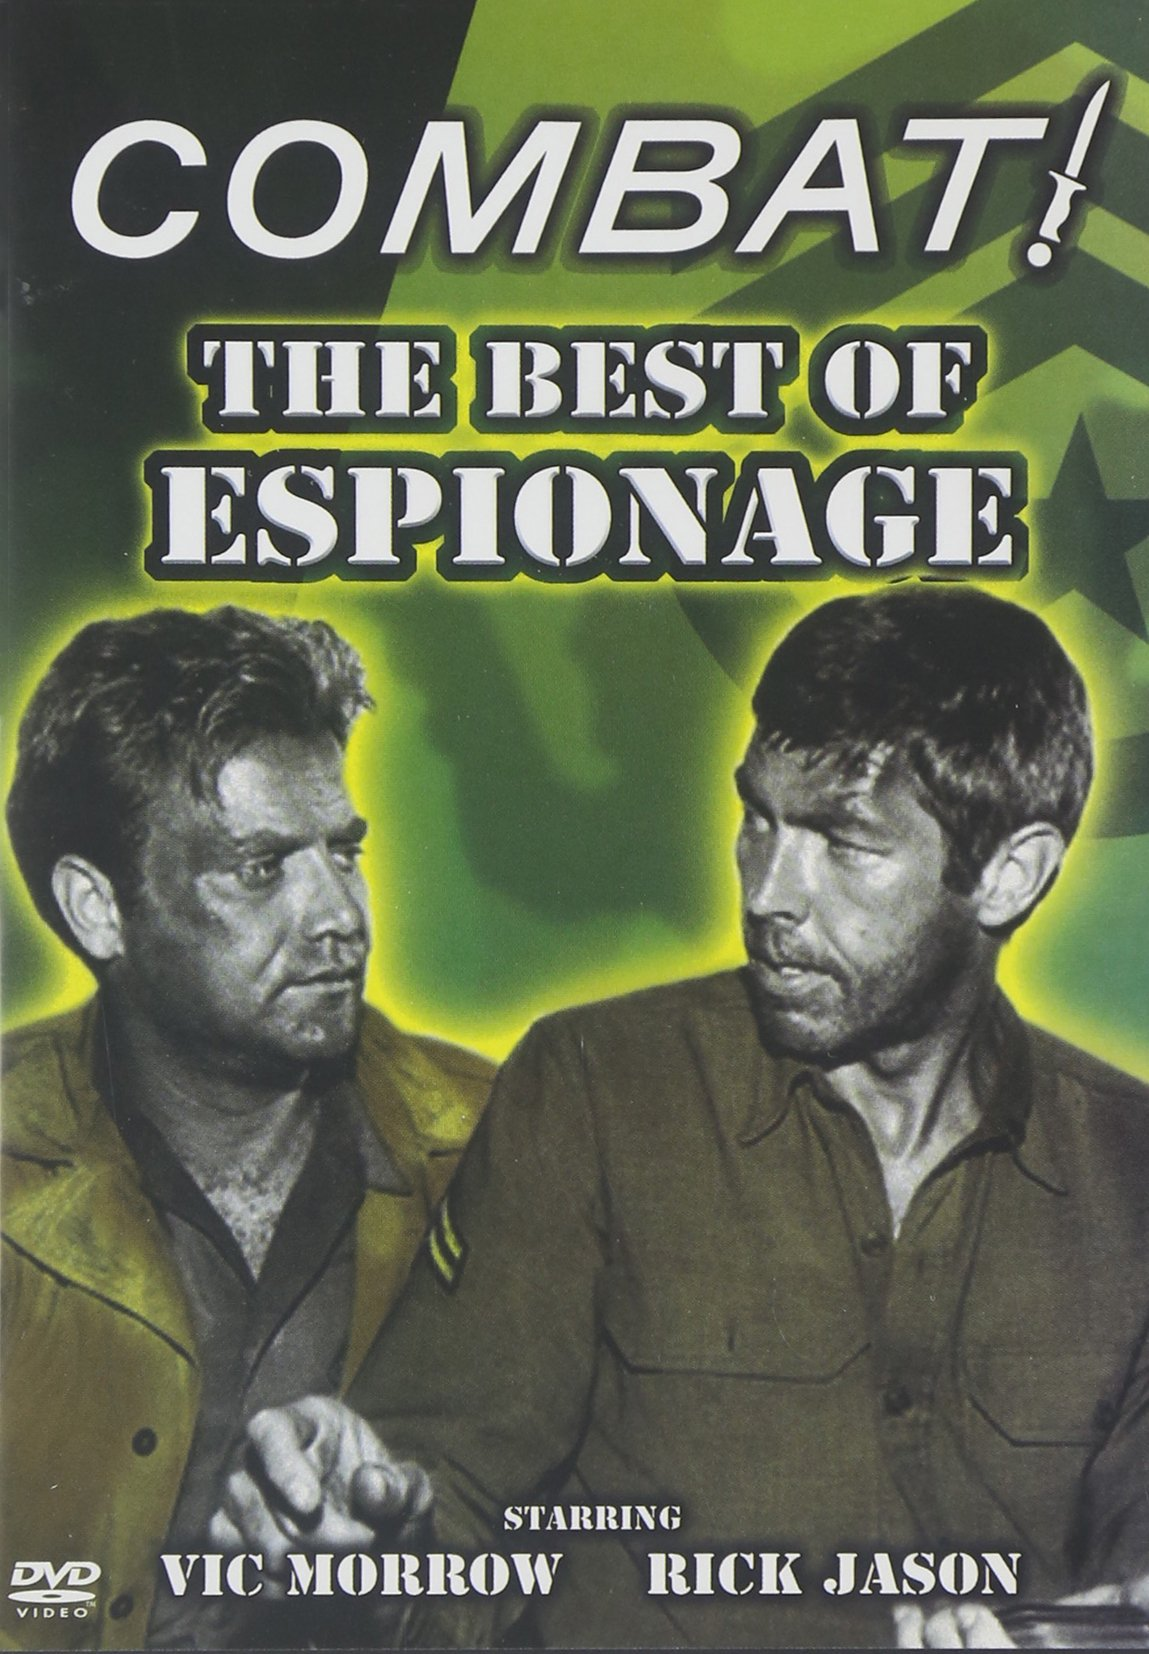 Combat! The Best of Espionage by Image Entertainment